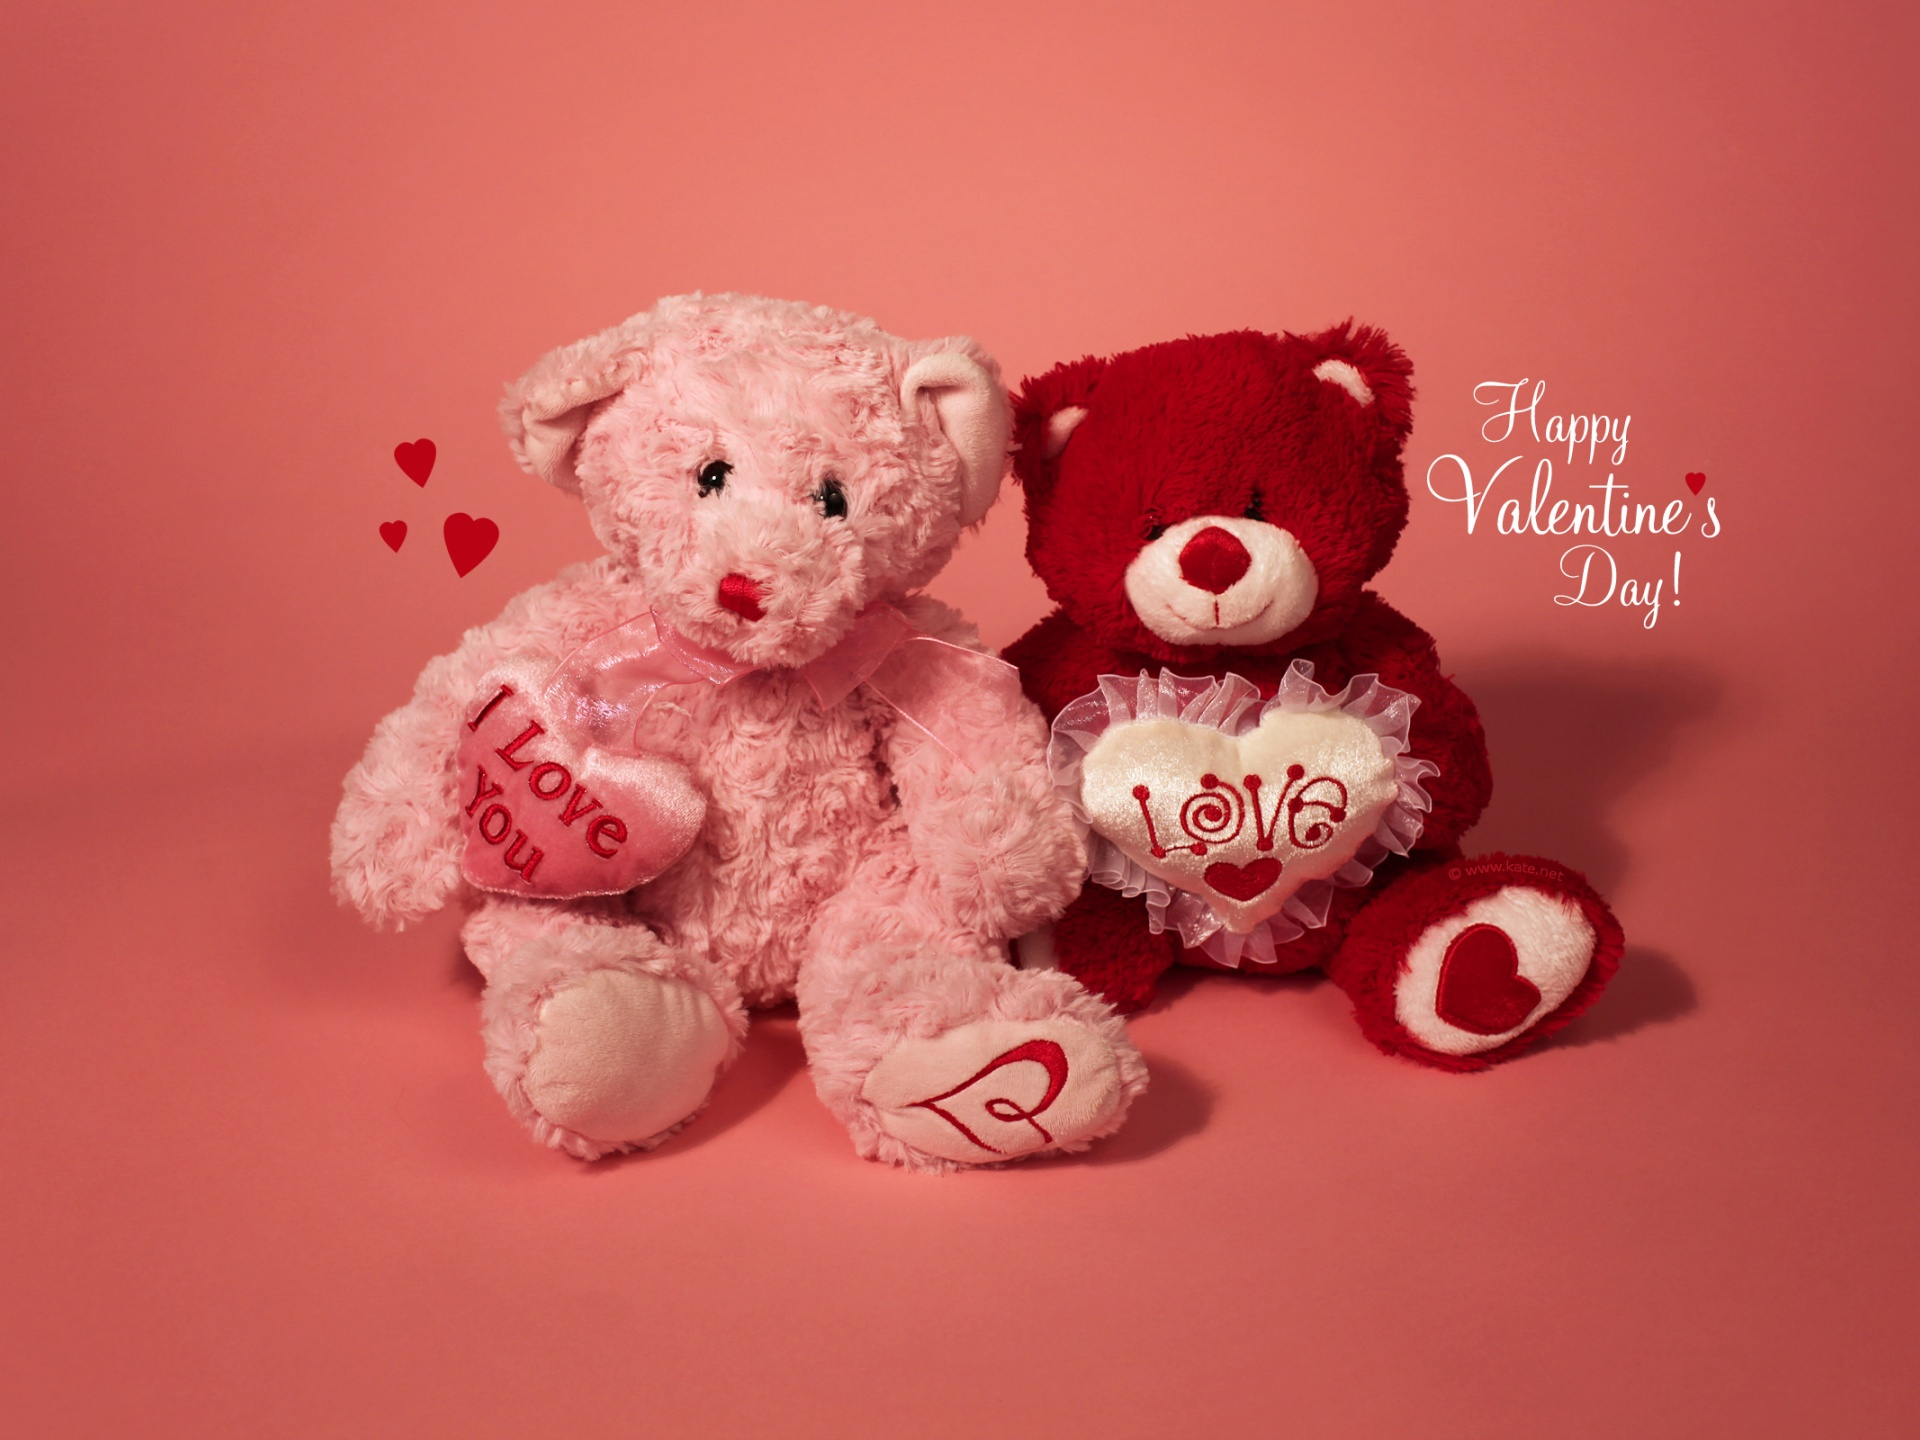 Teddy Bears For Valentine